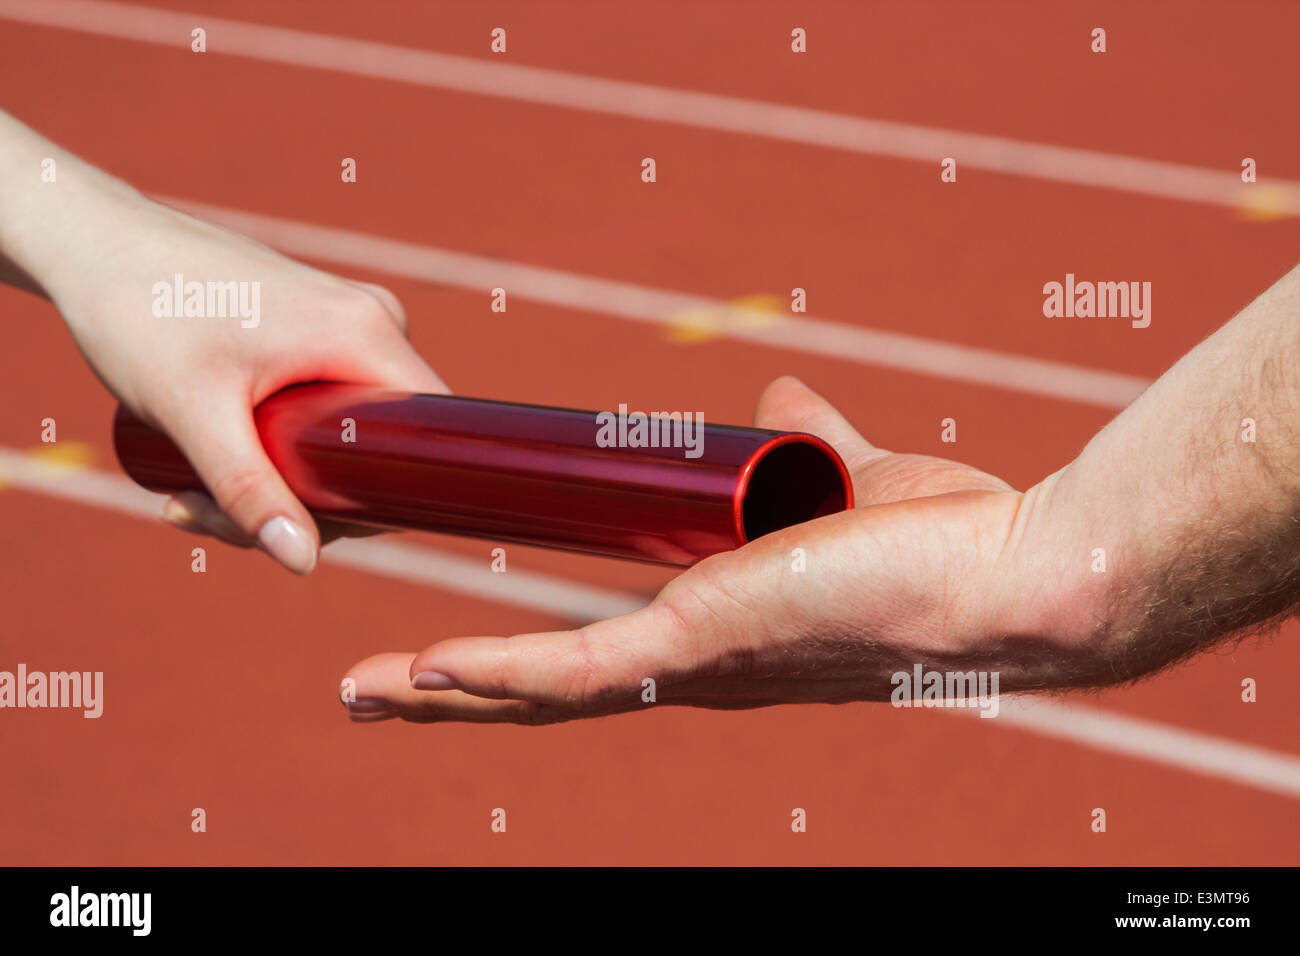 Female athlete hands over the relay race bar to a male athlete - Stock Image